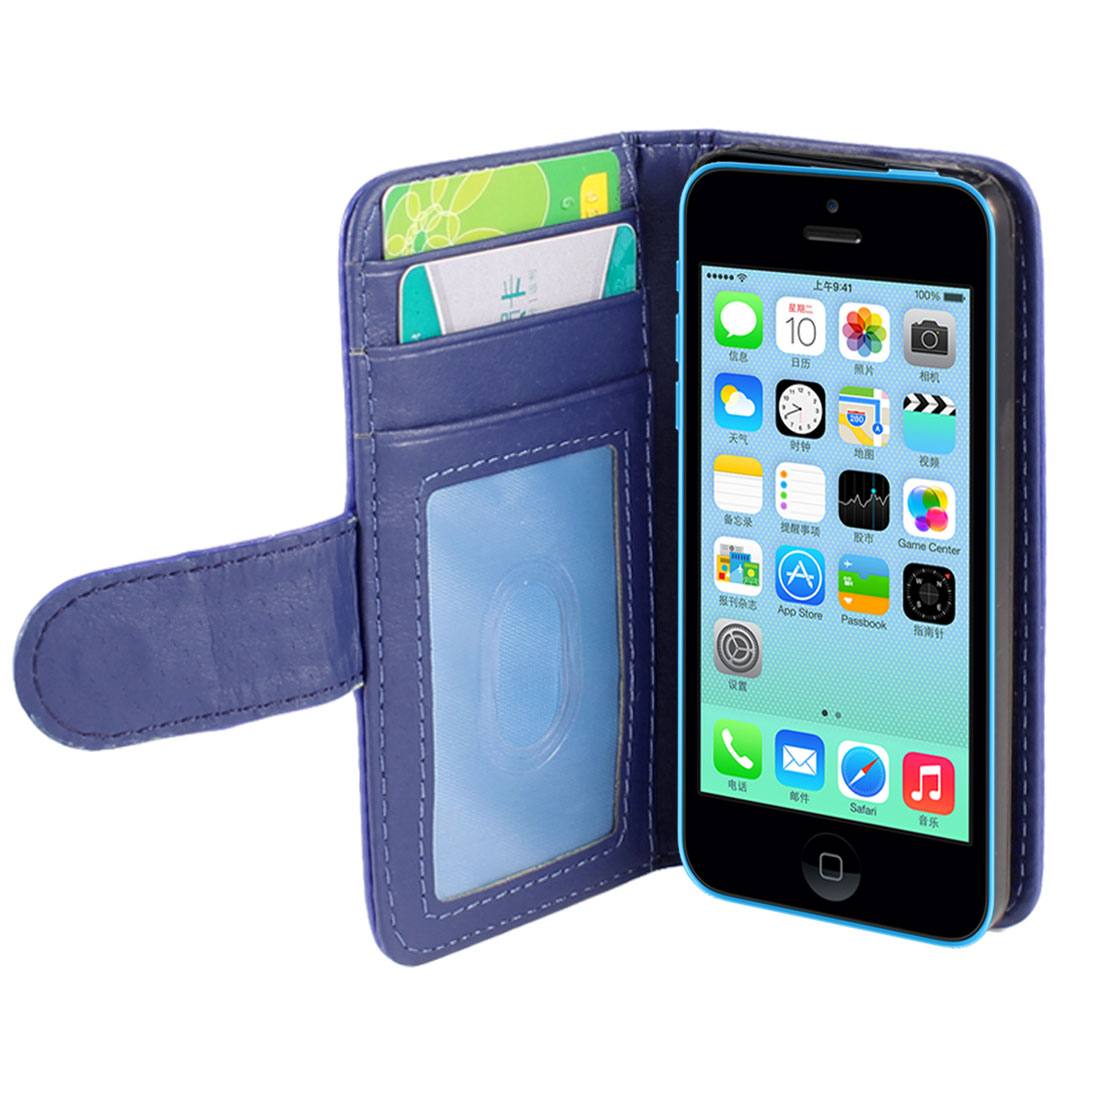 Solid Blue Faux Leather Card Holder Flip Case Cover for iPhone 5C